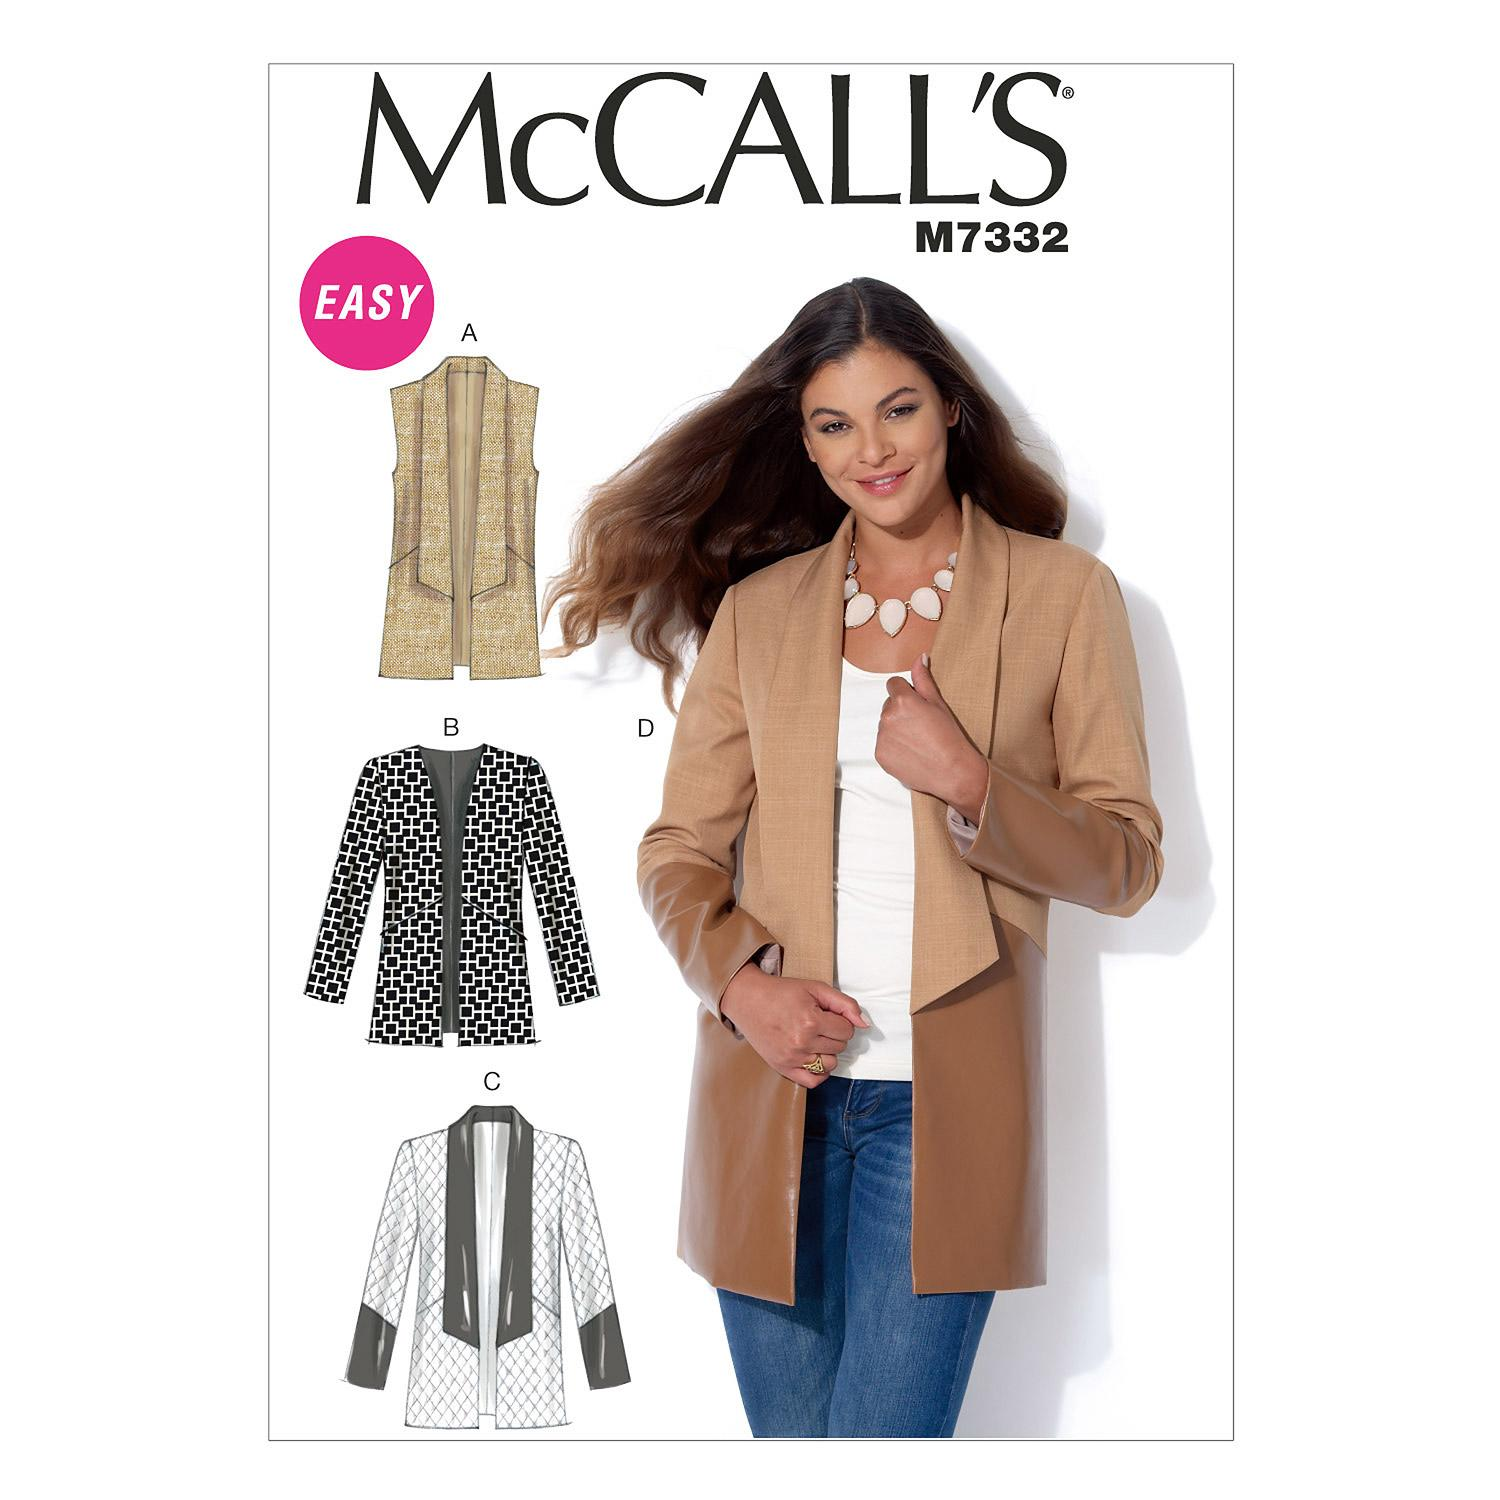 McCalls M7332 Jackets/Vests